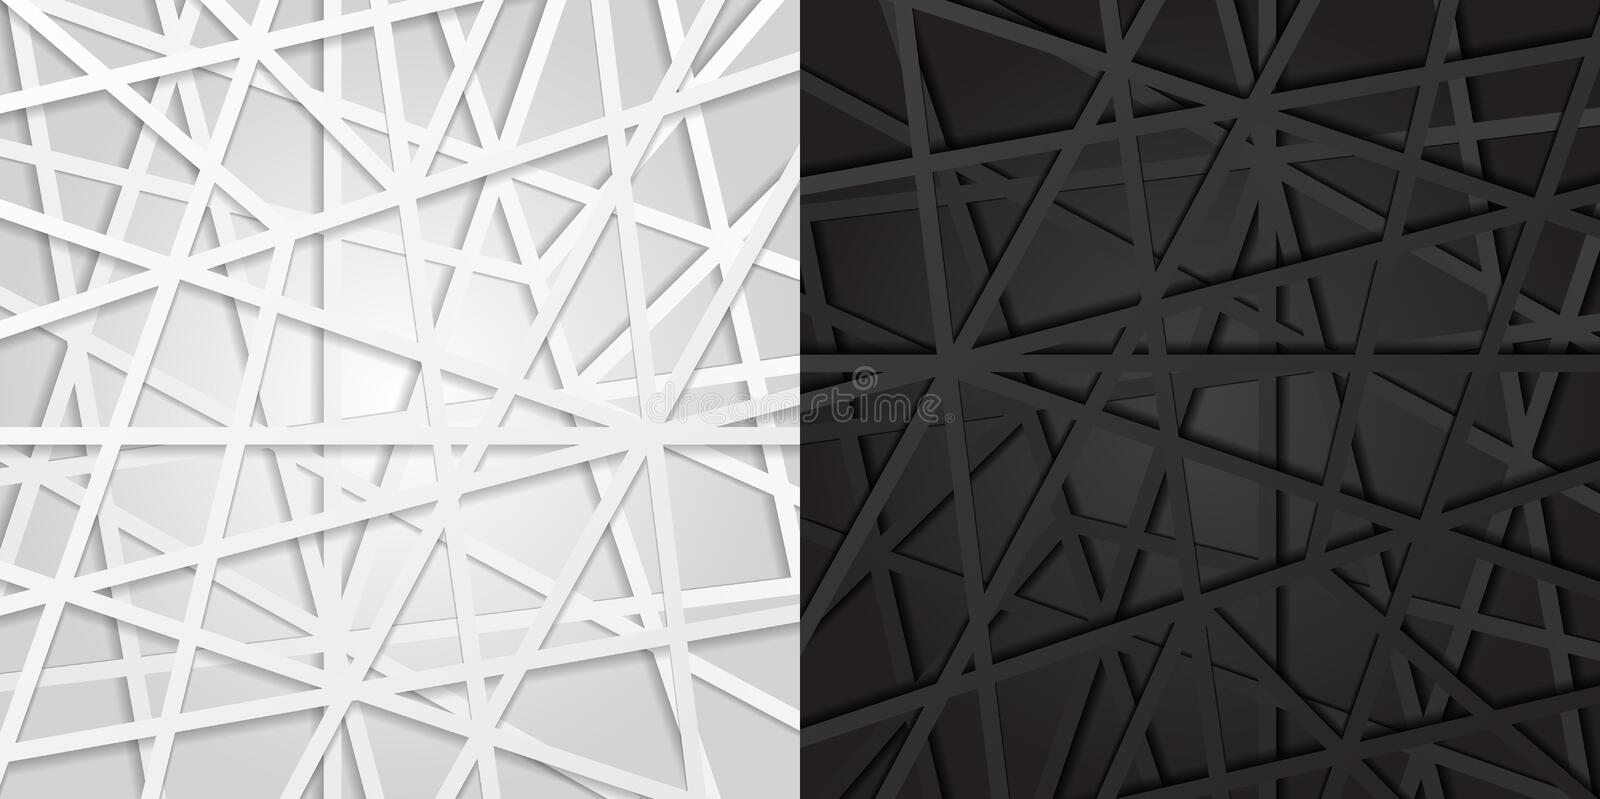 Abstract black and white lines futuristic overlap background. Vector illustration, digital royalty free illustration